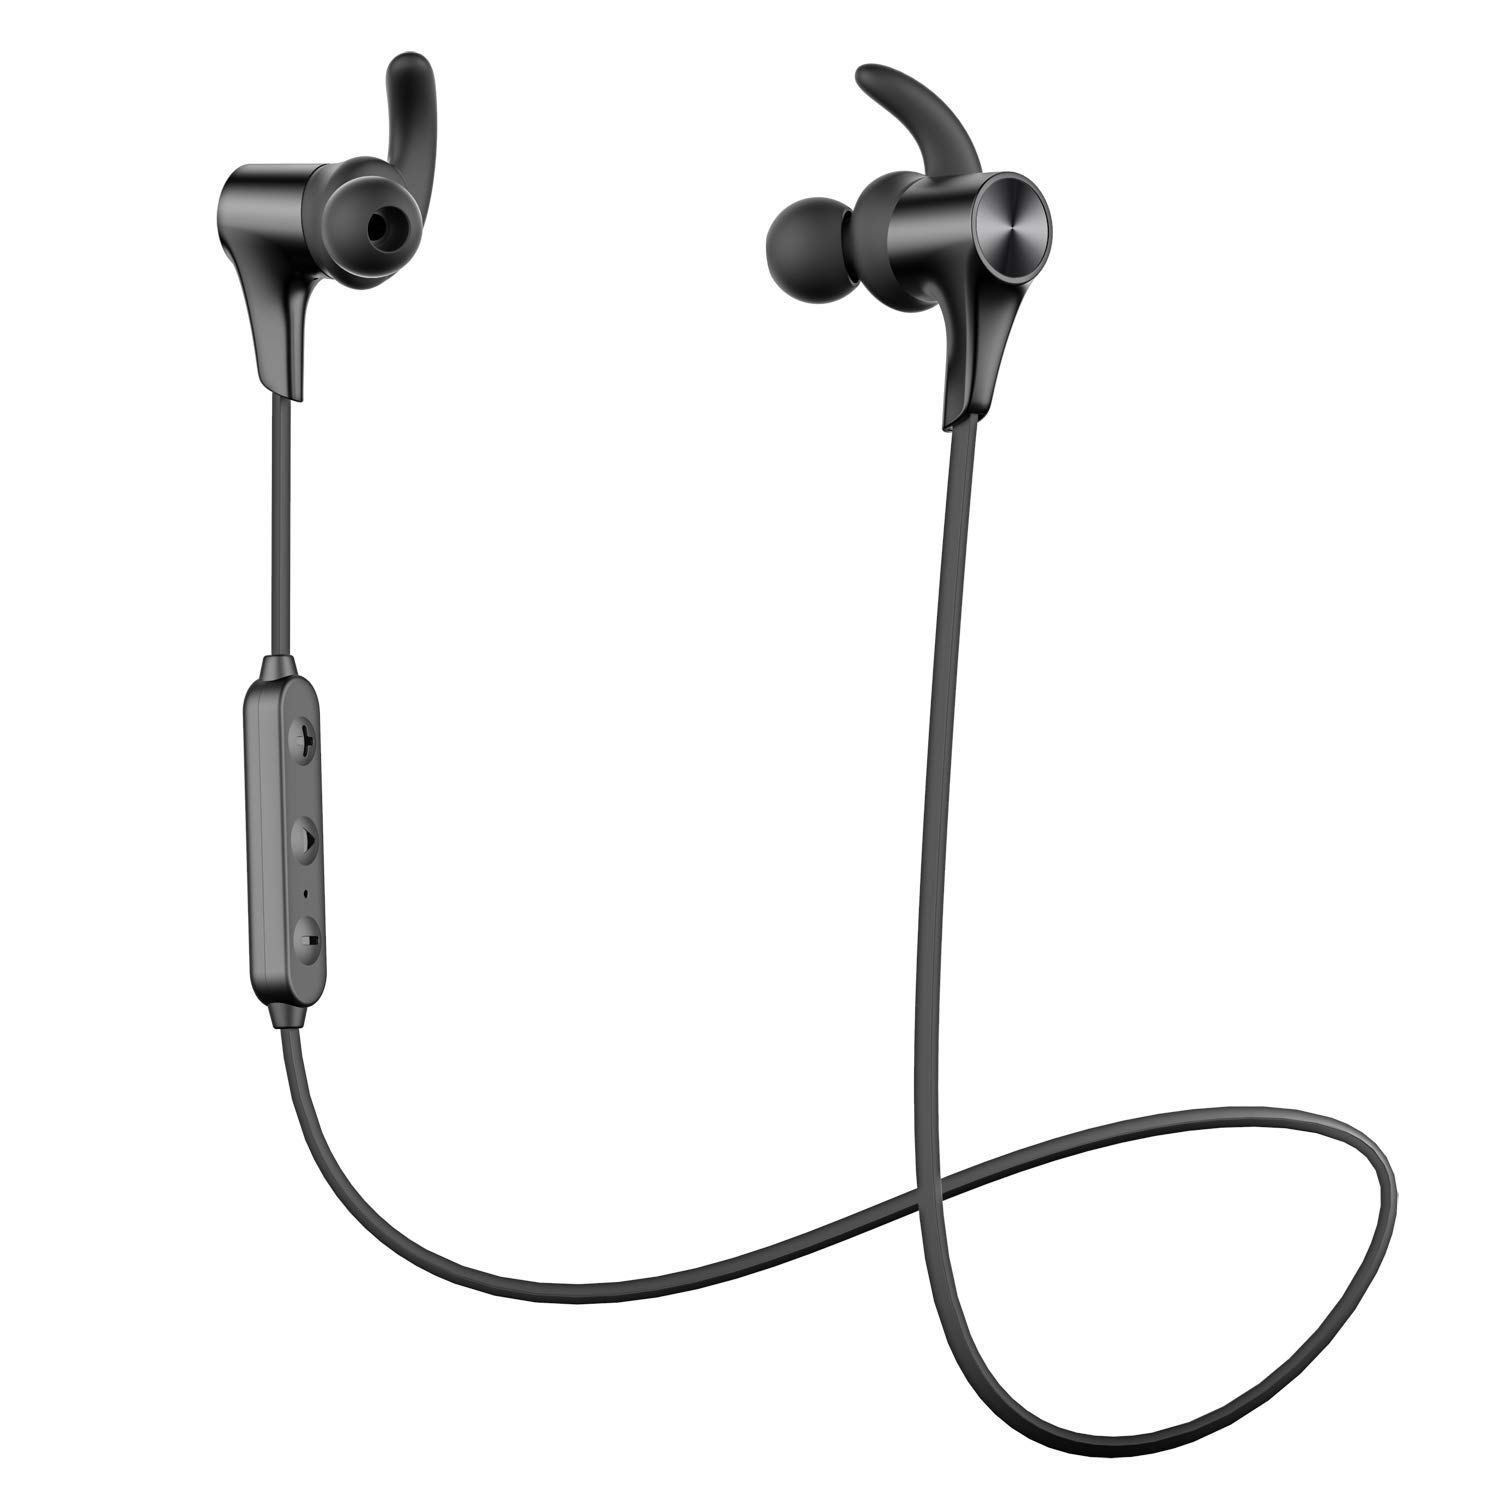 SoundPEATS Q12 HD Bluetooth 5.0 Headphones Wireless Headphones IPX6 Waterproof APTX-HD Stereo Sport In-Ear Earbuds CVC 8.0 Noise Cancelling Mic Bluetooth Earphones